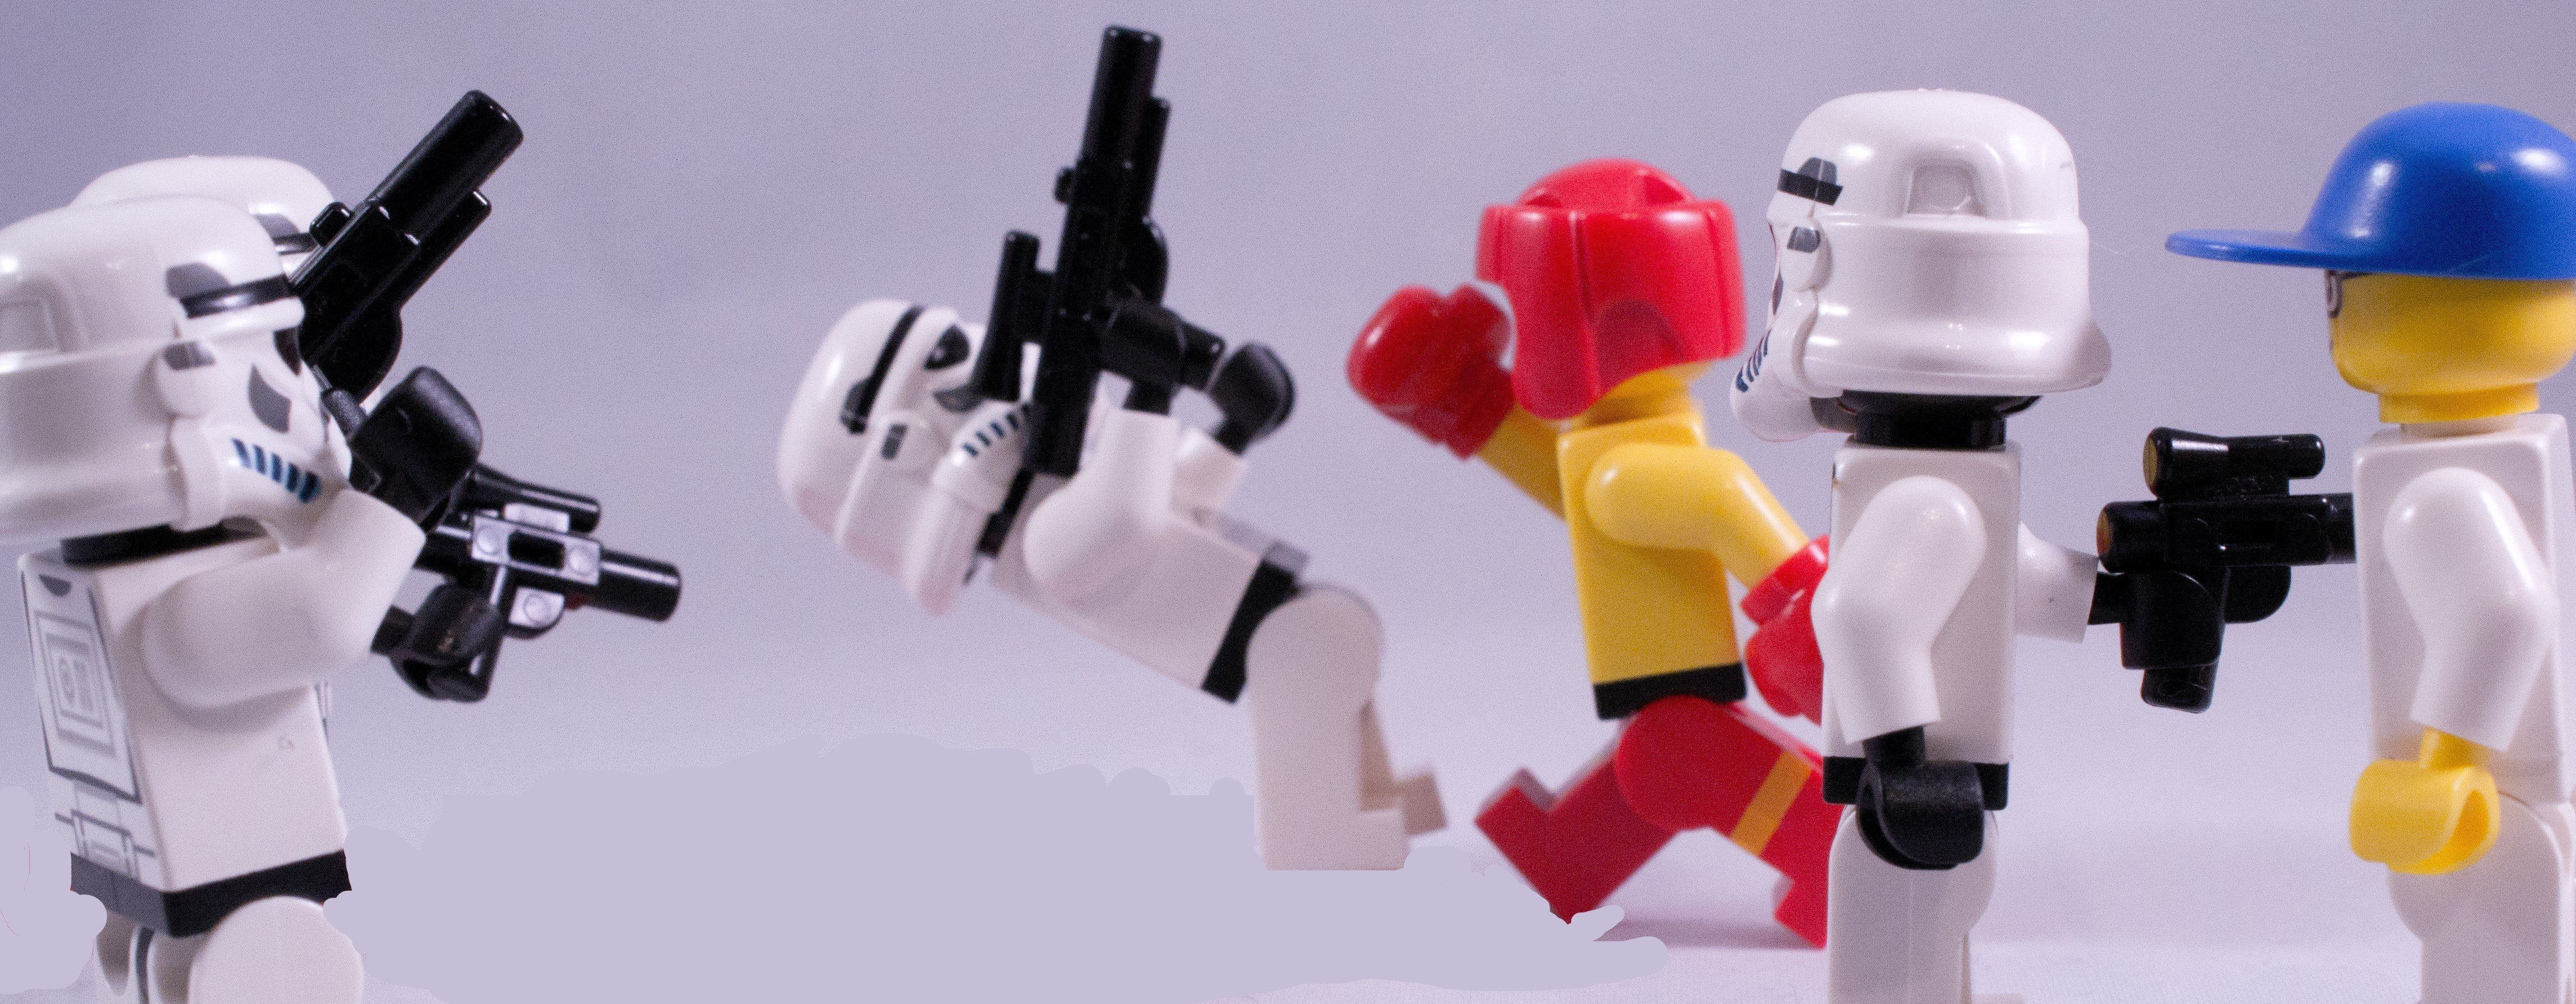 A LEGO boxer, who clearly jumps rope, fighting some stormtroopers.